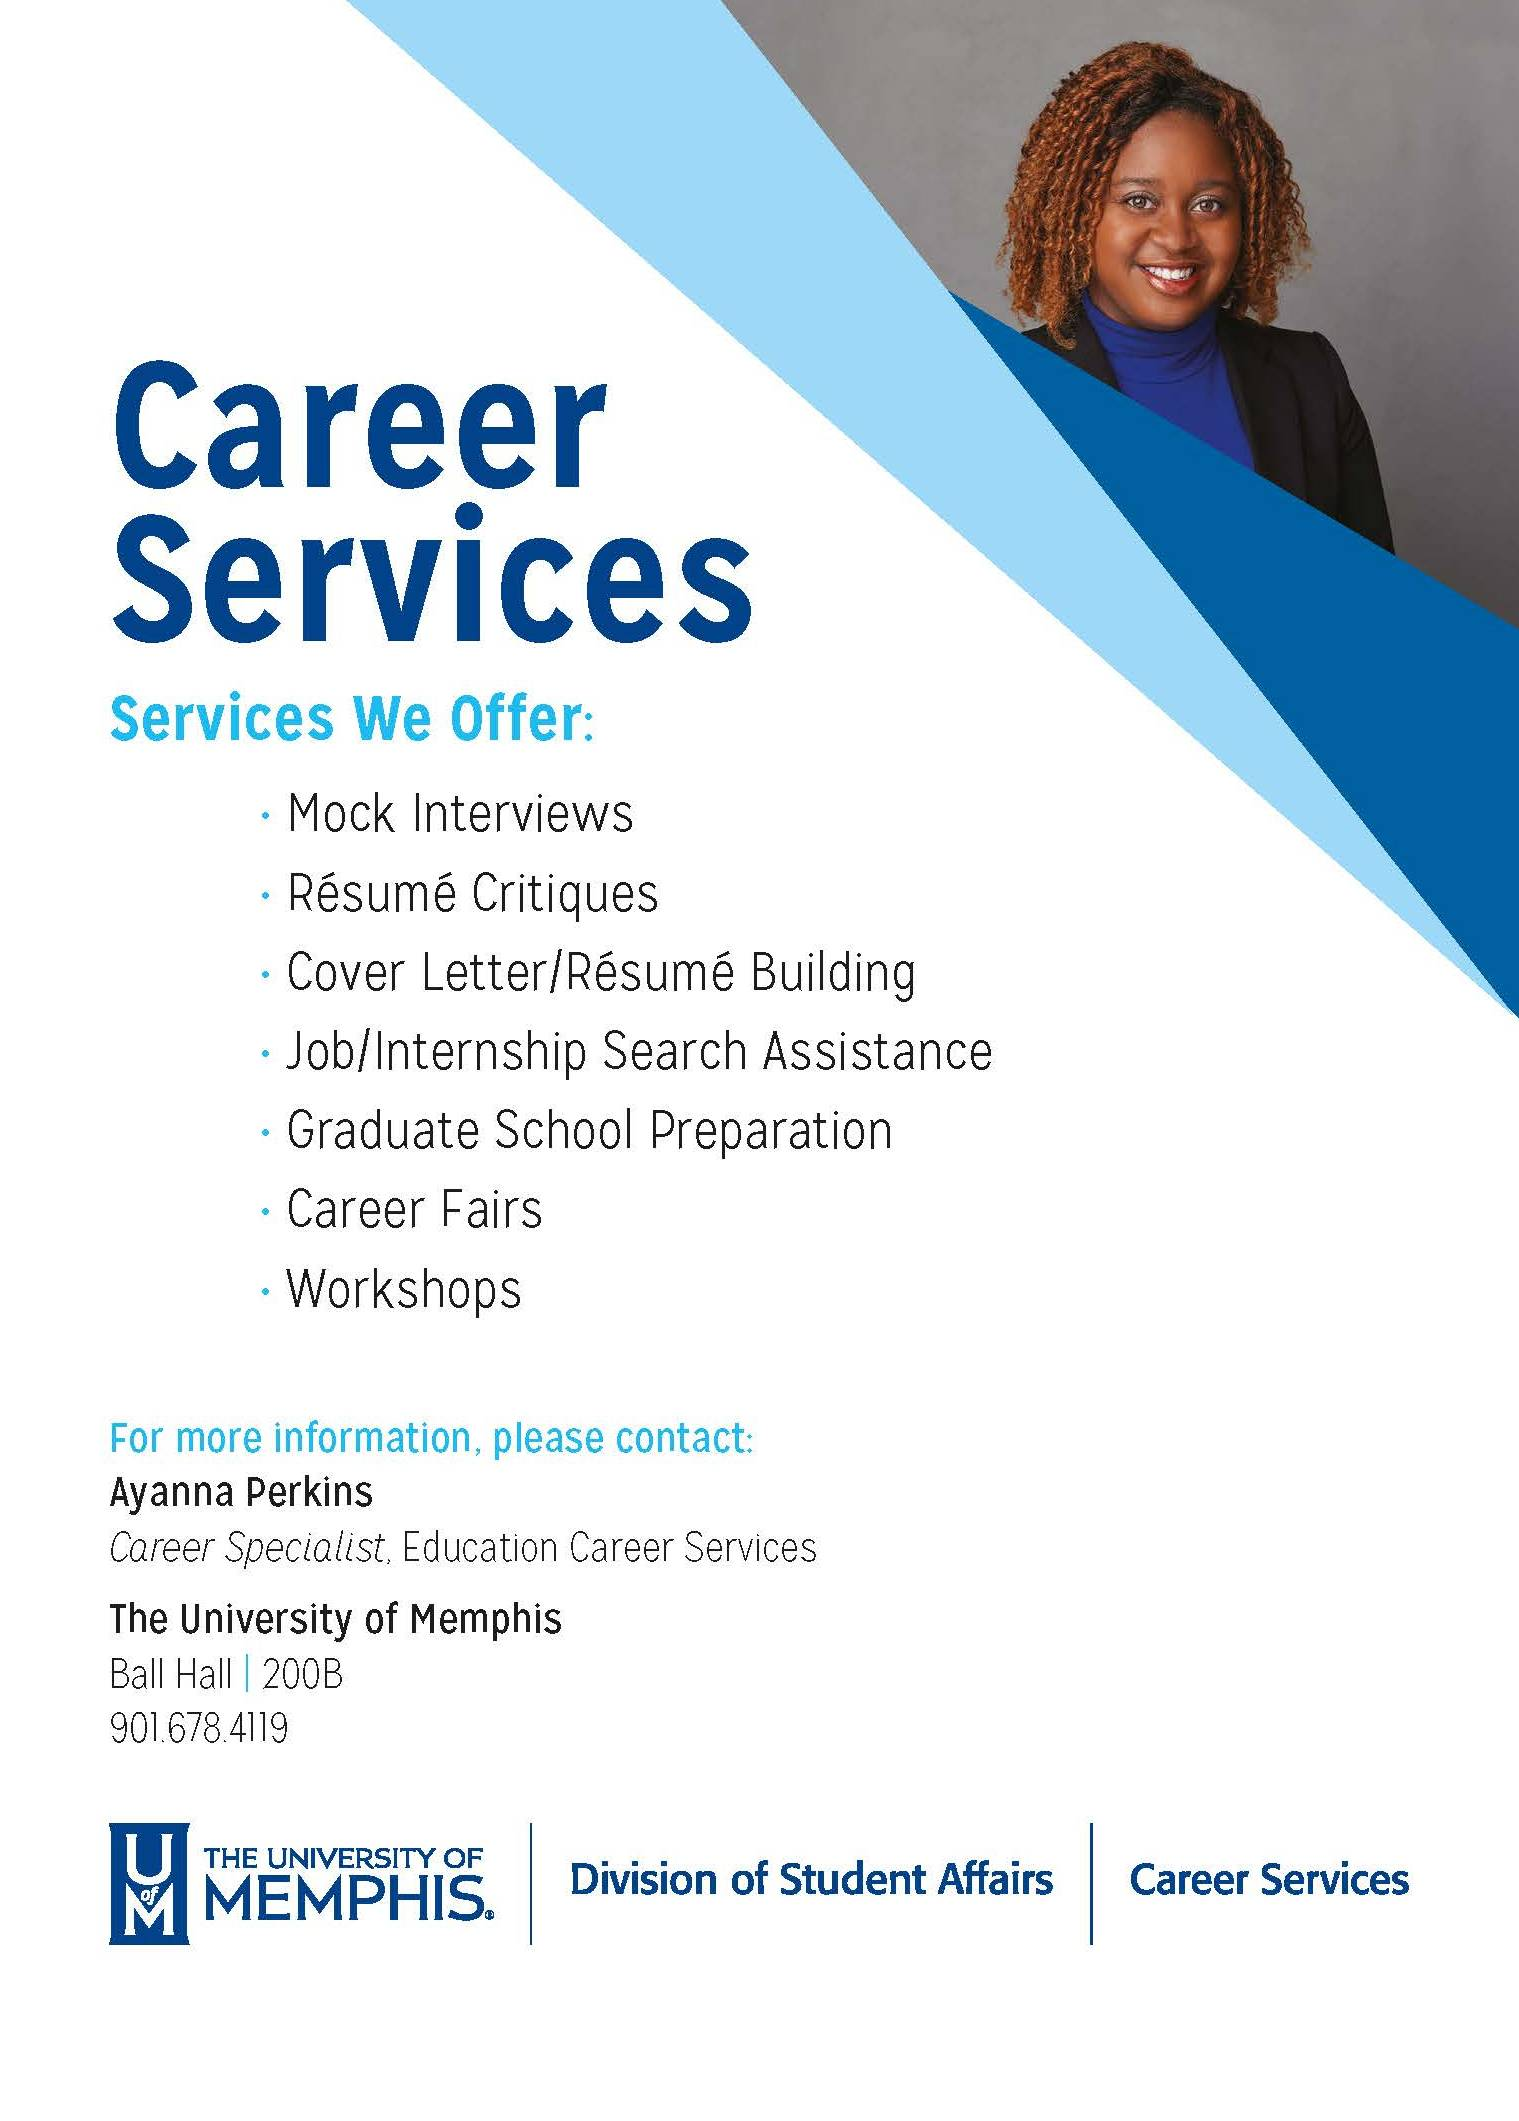 Career Services offers Mock interviews, resume critiques, cover letter/resume building, job/internship search assistance, graduate school preparation, career fairs, workshops